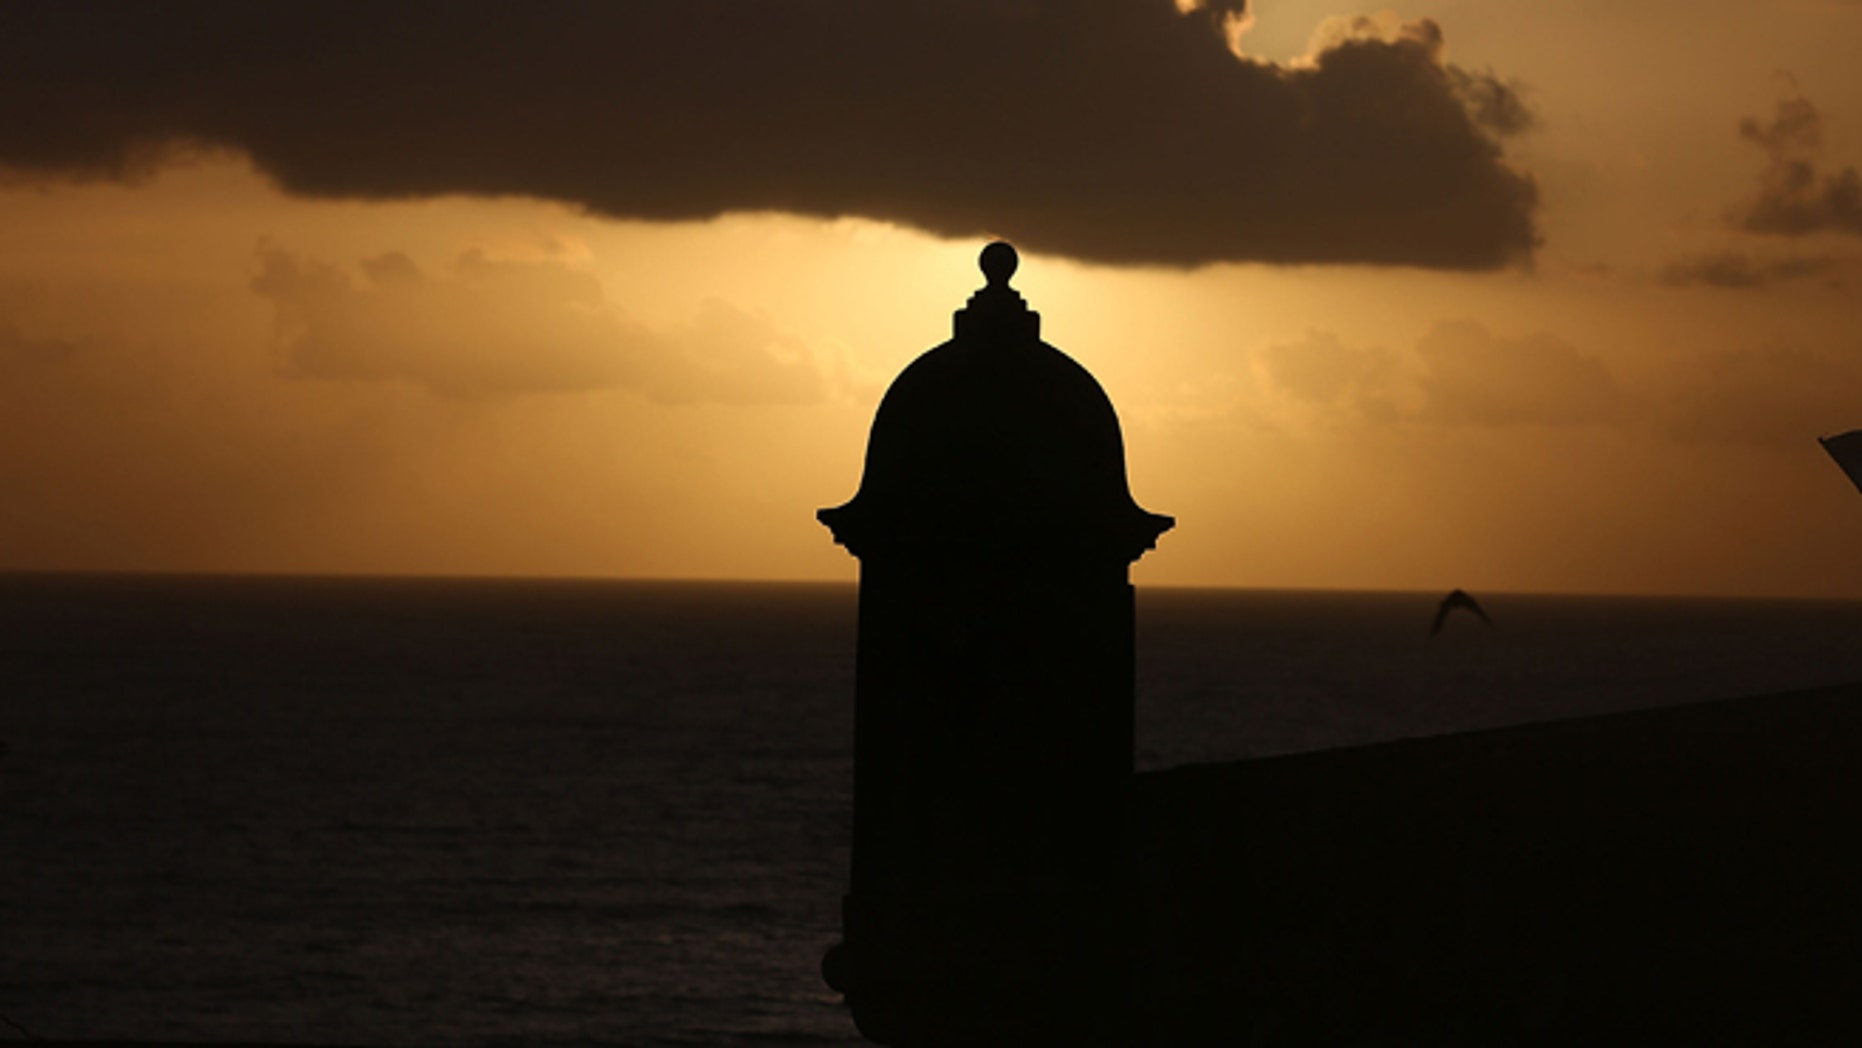 SAN JUAN, PUERTO RICO - JUNE 30:  The sun rises near a guard tower at Fort San Felipe del Morro a day after Puerto Rican Governor Alejandro Garcia Padilla gave a speech regarding the government's $72 billion debt on June 30, 2015 in San Juan, Puerto Rico.  The Governor said in his speech that the people will have to sacrifice and share in the responsibilities for pulling the island out of debt.  (Photo by Joe Raedle/Getty Images)